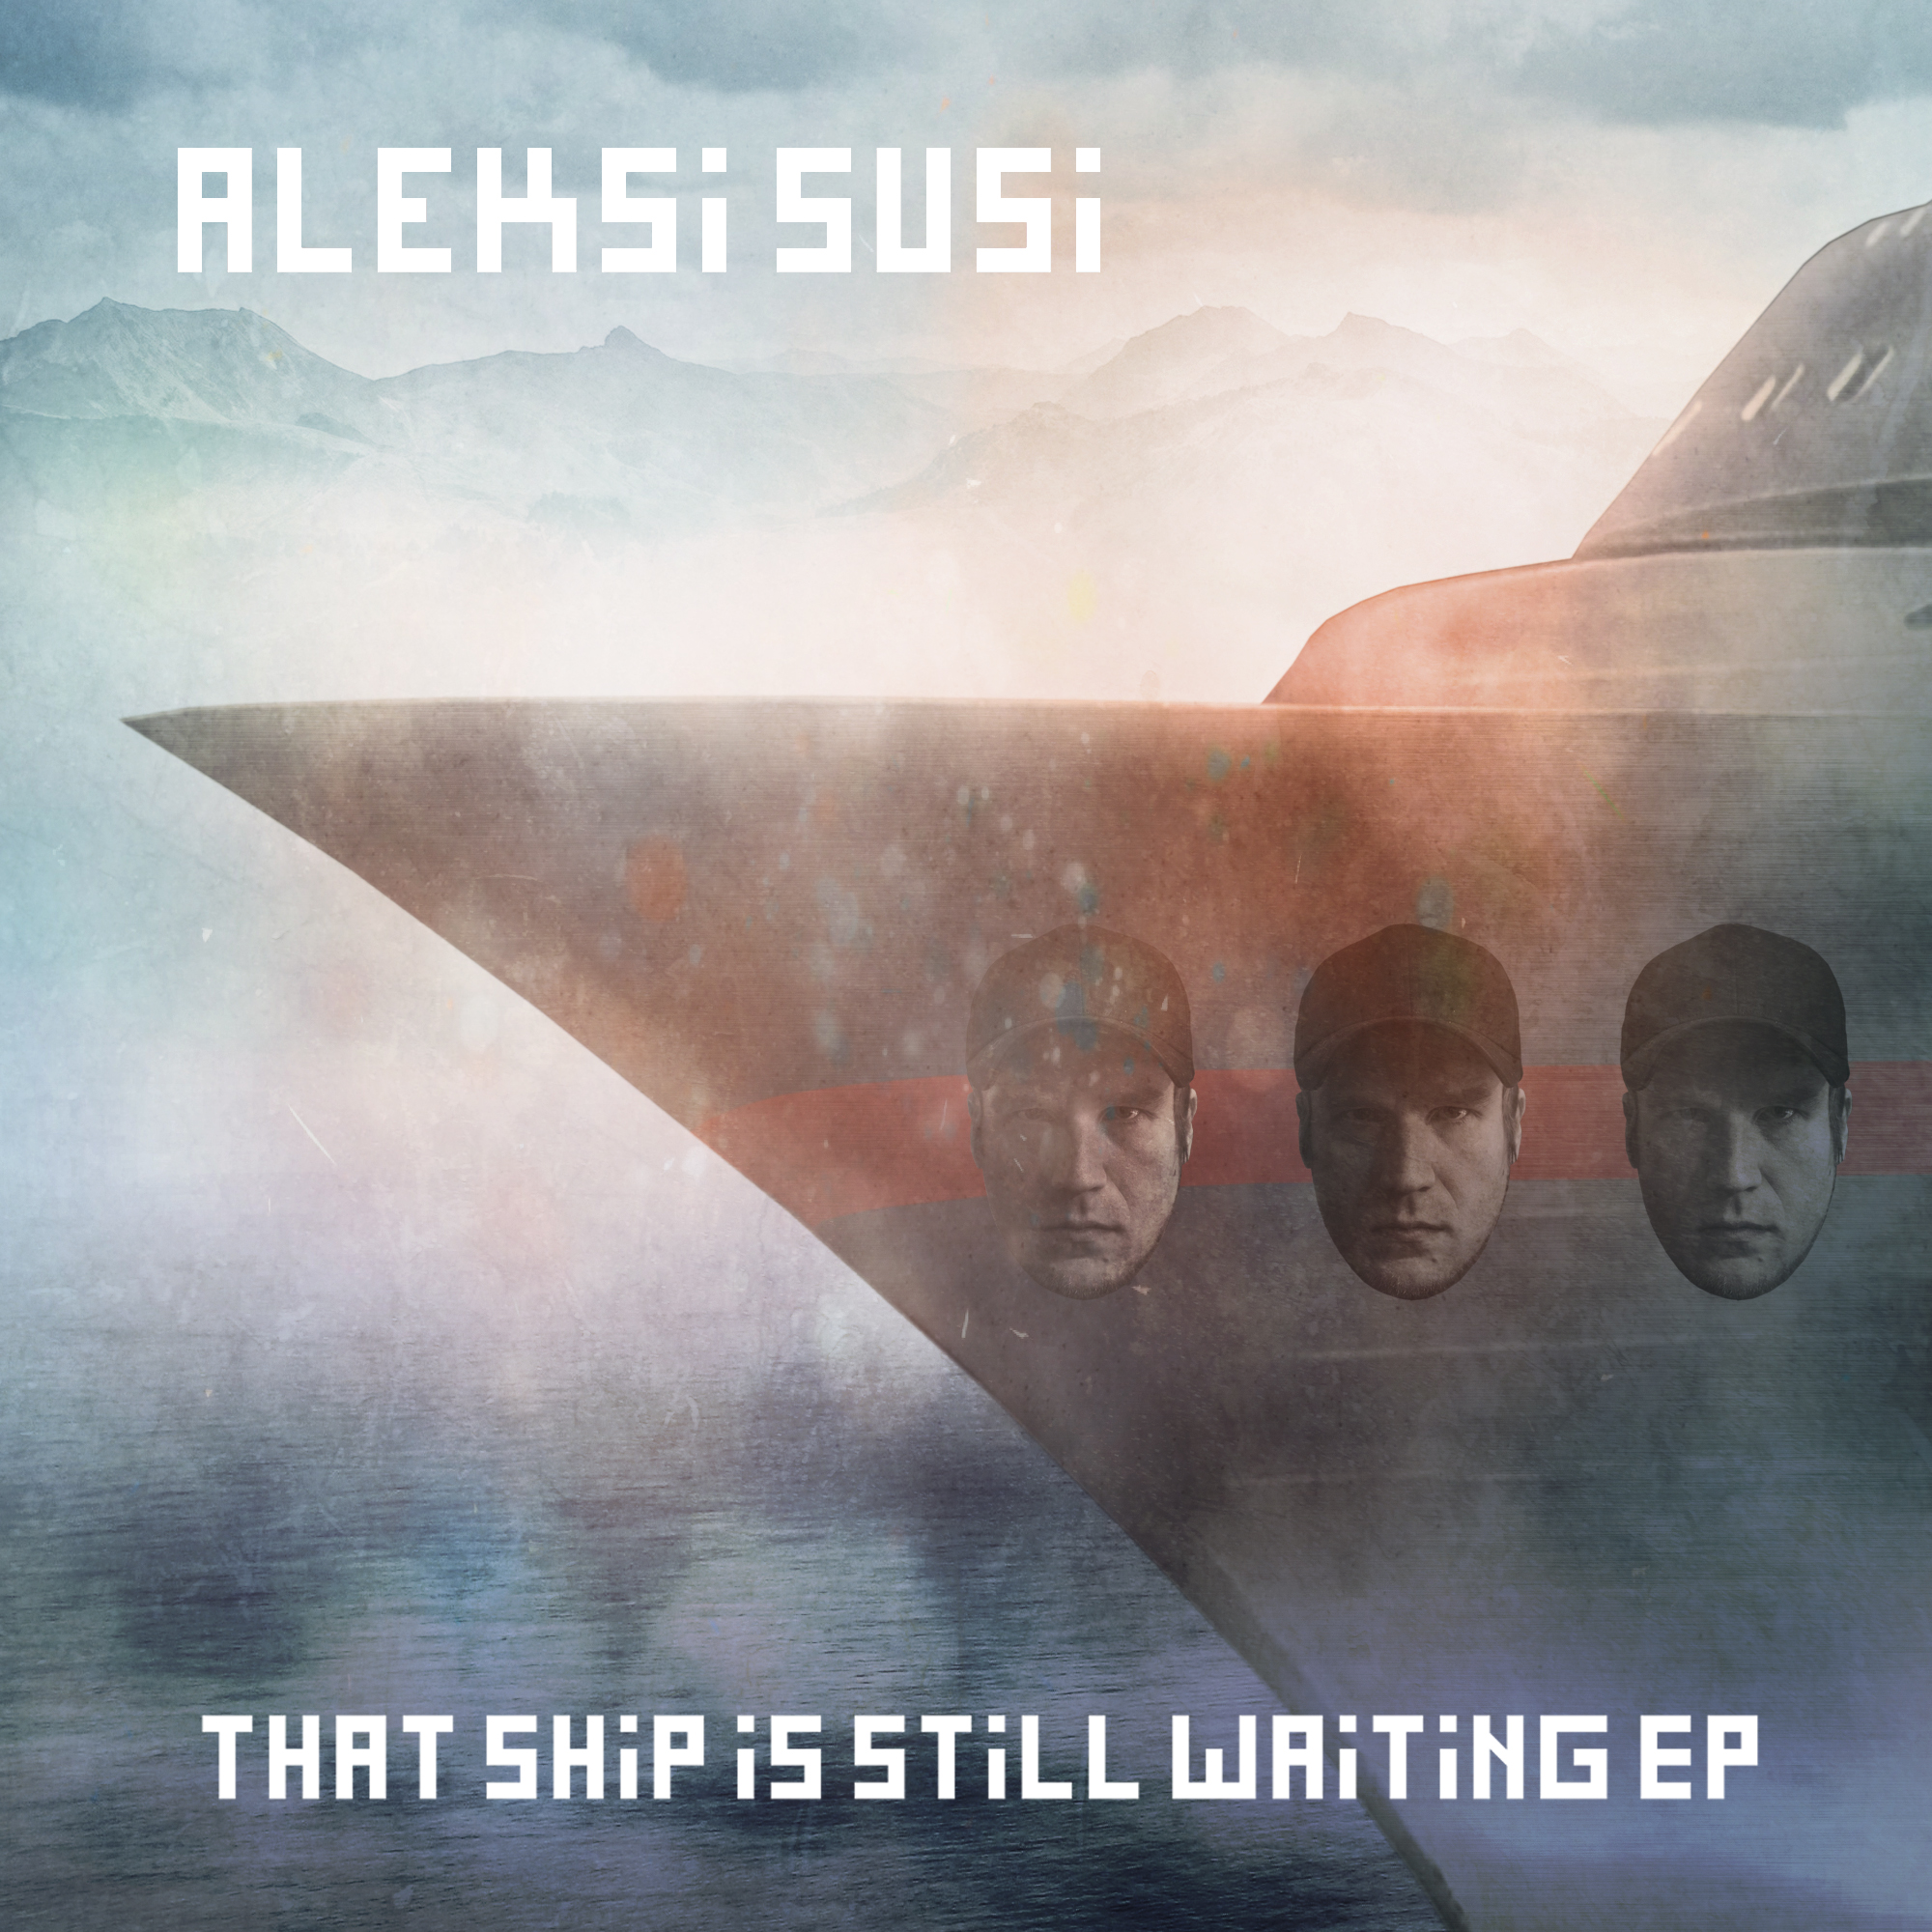 Aleksi Susi That Ship is Still Waiting Sale sulla nave del cambiamento (Review Pier-X)